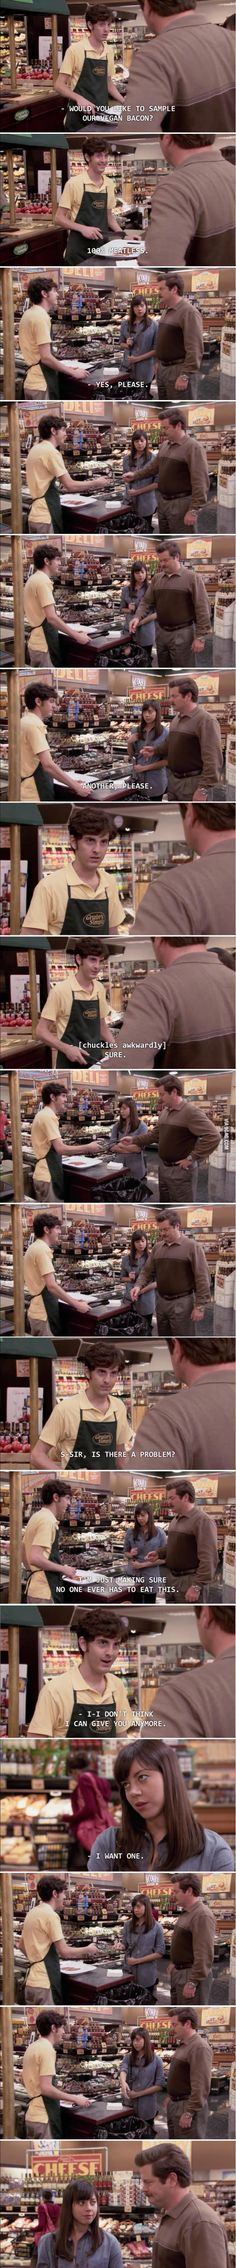 ron swanson and april ludgate moment - Imgur